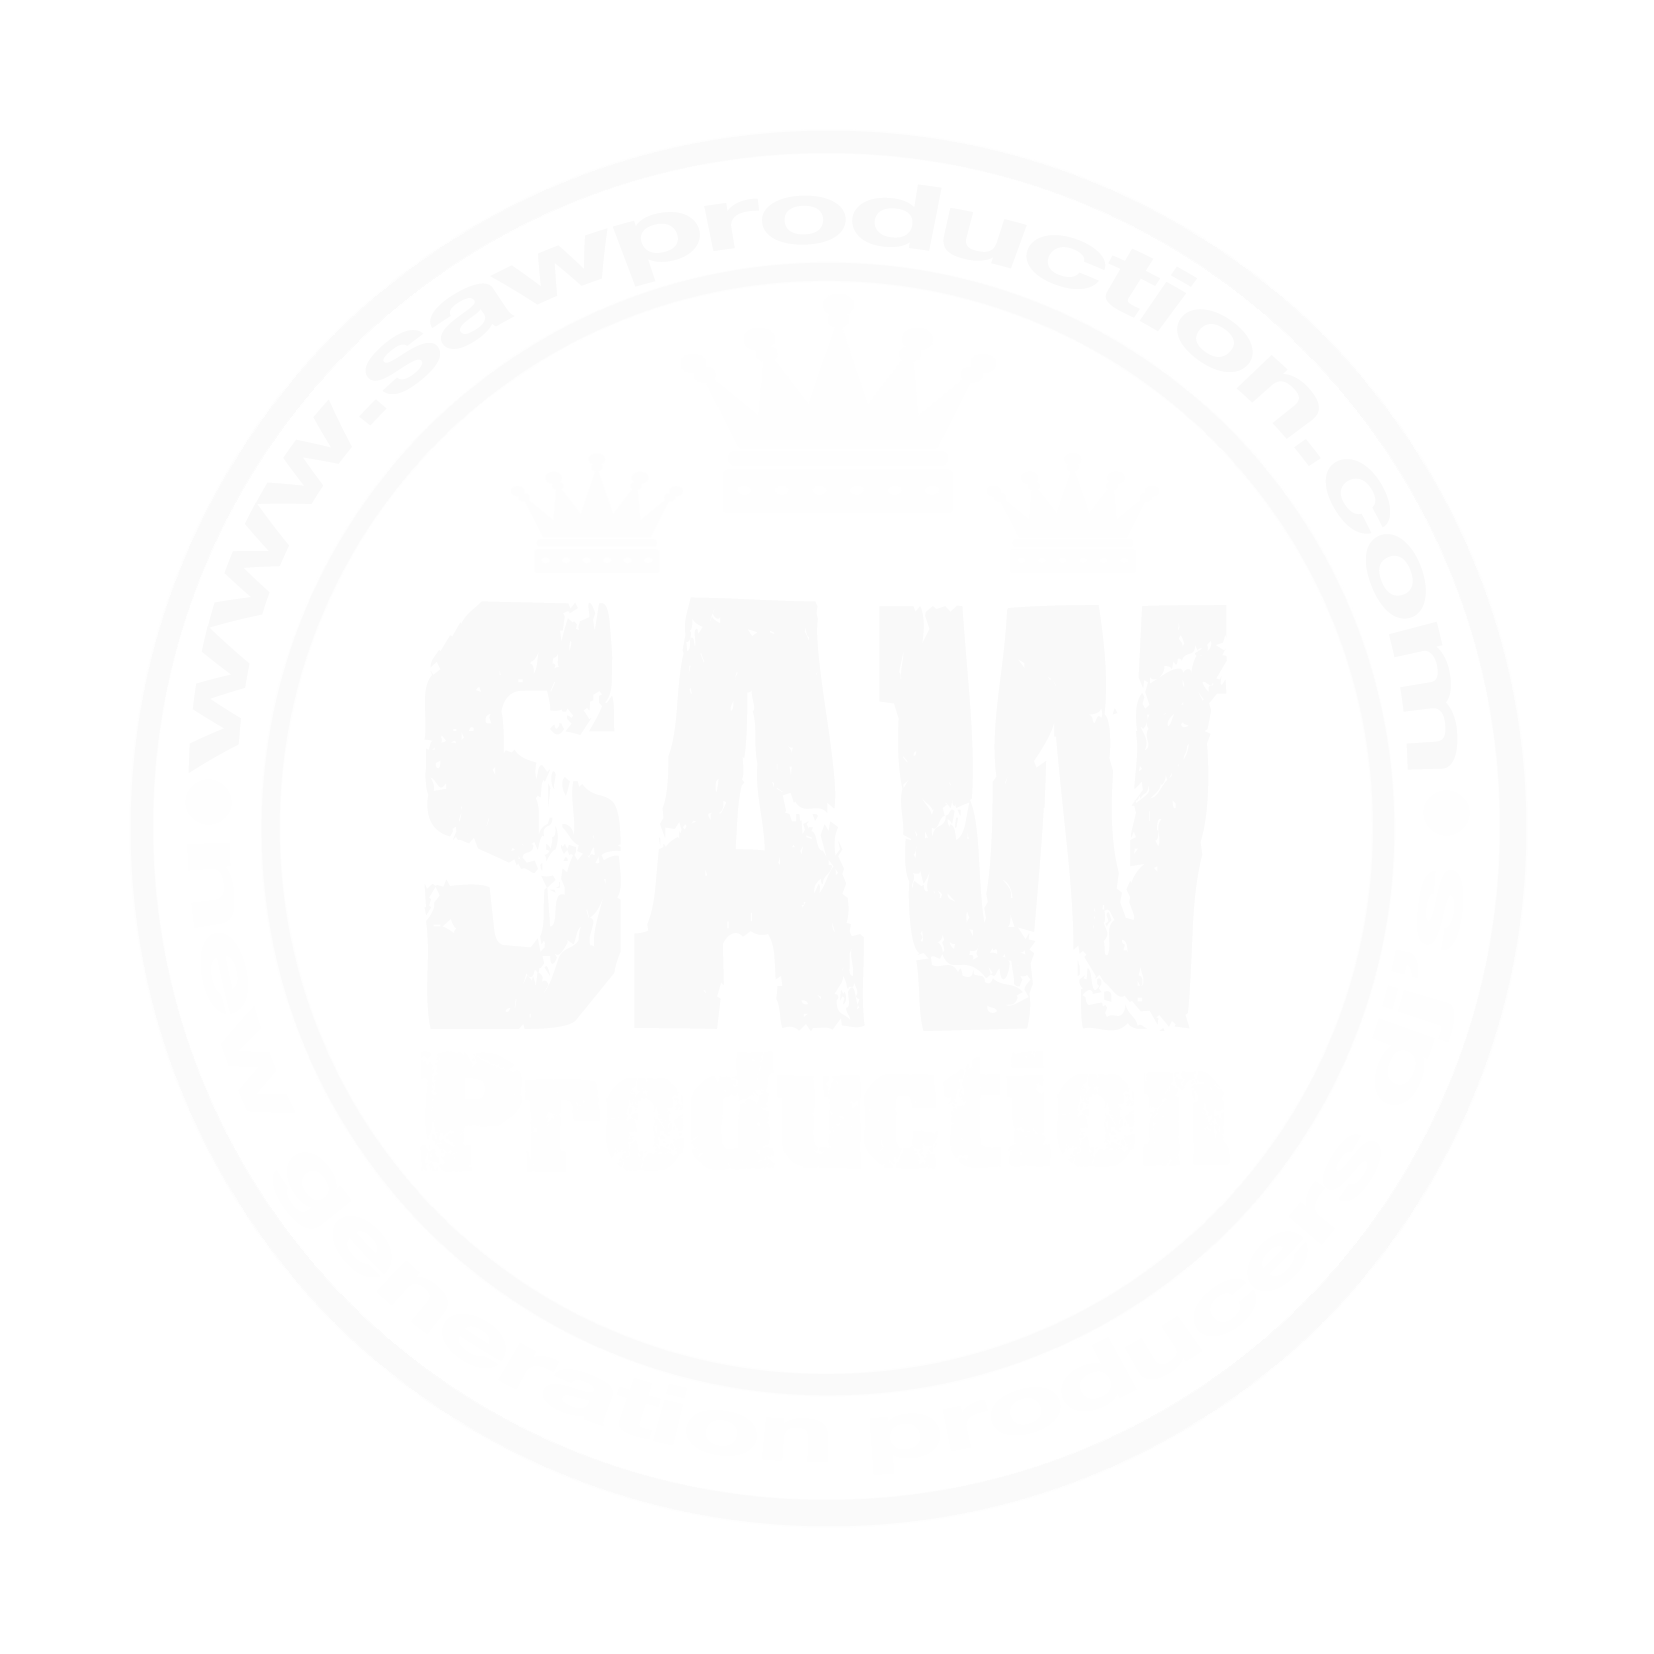 SawProduction